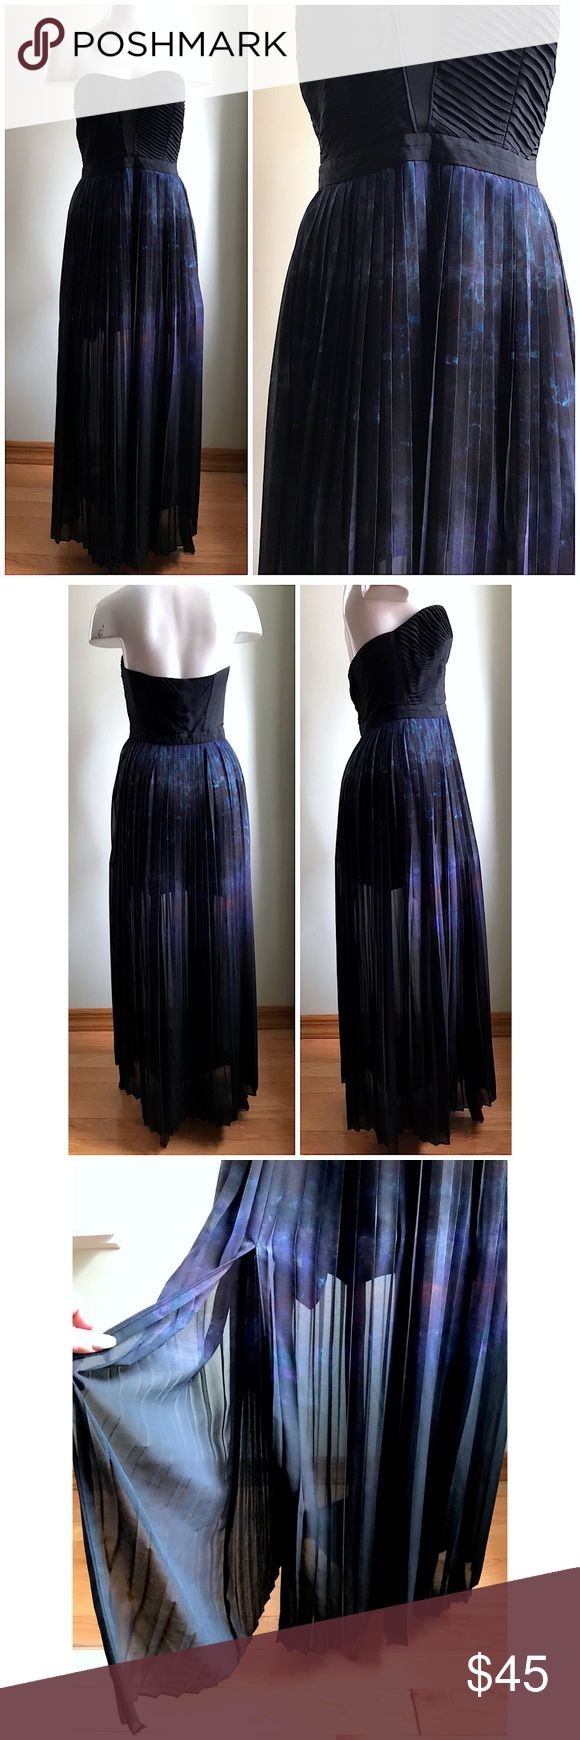 """Urban Outfitters Straples Ombre Pleated Maxi Dress Urban Outfitters Strapless Black Ombre Watercolor Pleated Maxi Dress Sz 6   Brand: Silence + Noise (Urban Outfitters) Size: 6 (Medium) Condition: pre-loved Material: polyester  • maxi dress • pleated bust with slight boning for structure • sweetheart neckline • strapless • side zip closure • lined • watercolor/ombre effect • slits in front on both sides • $119 original retail Measurements laying down: Chest: 15"""" Center length (bust to hem)…"""